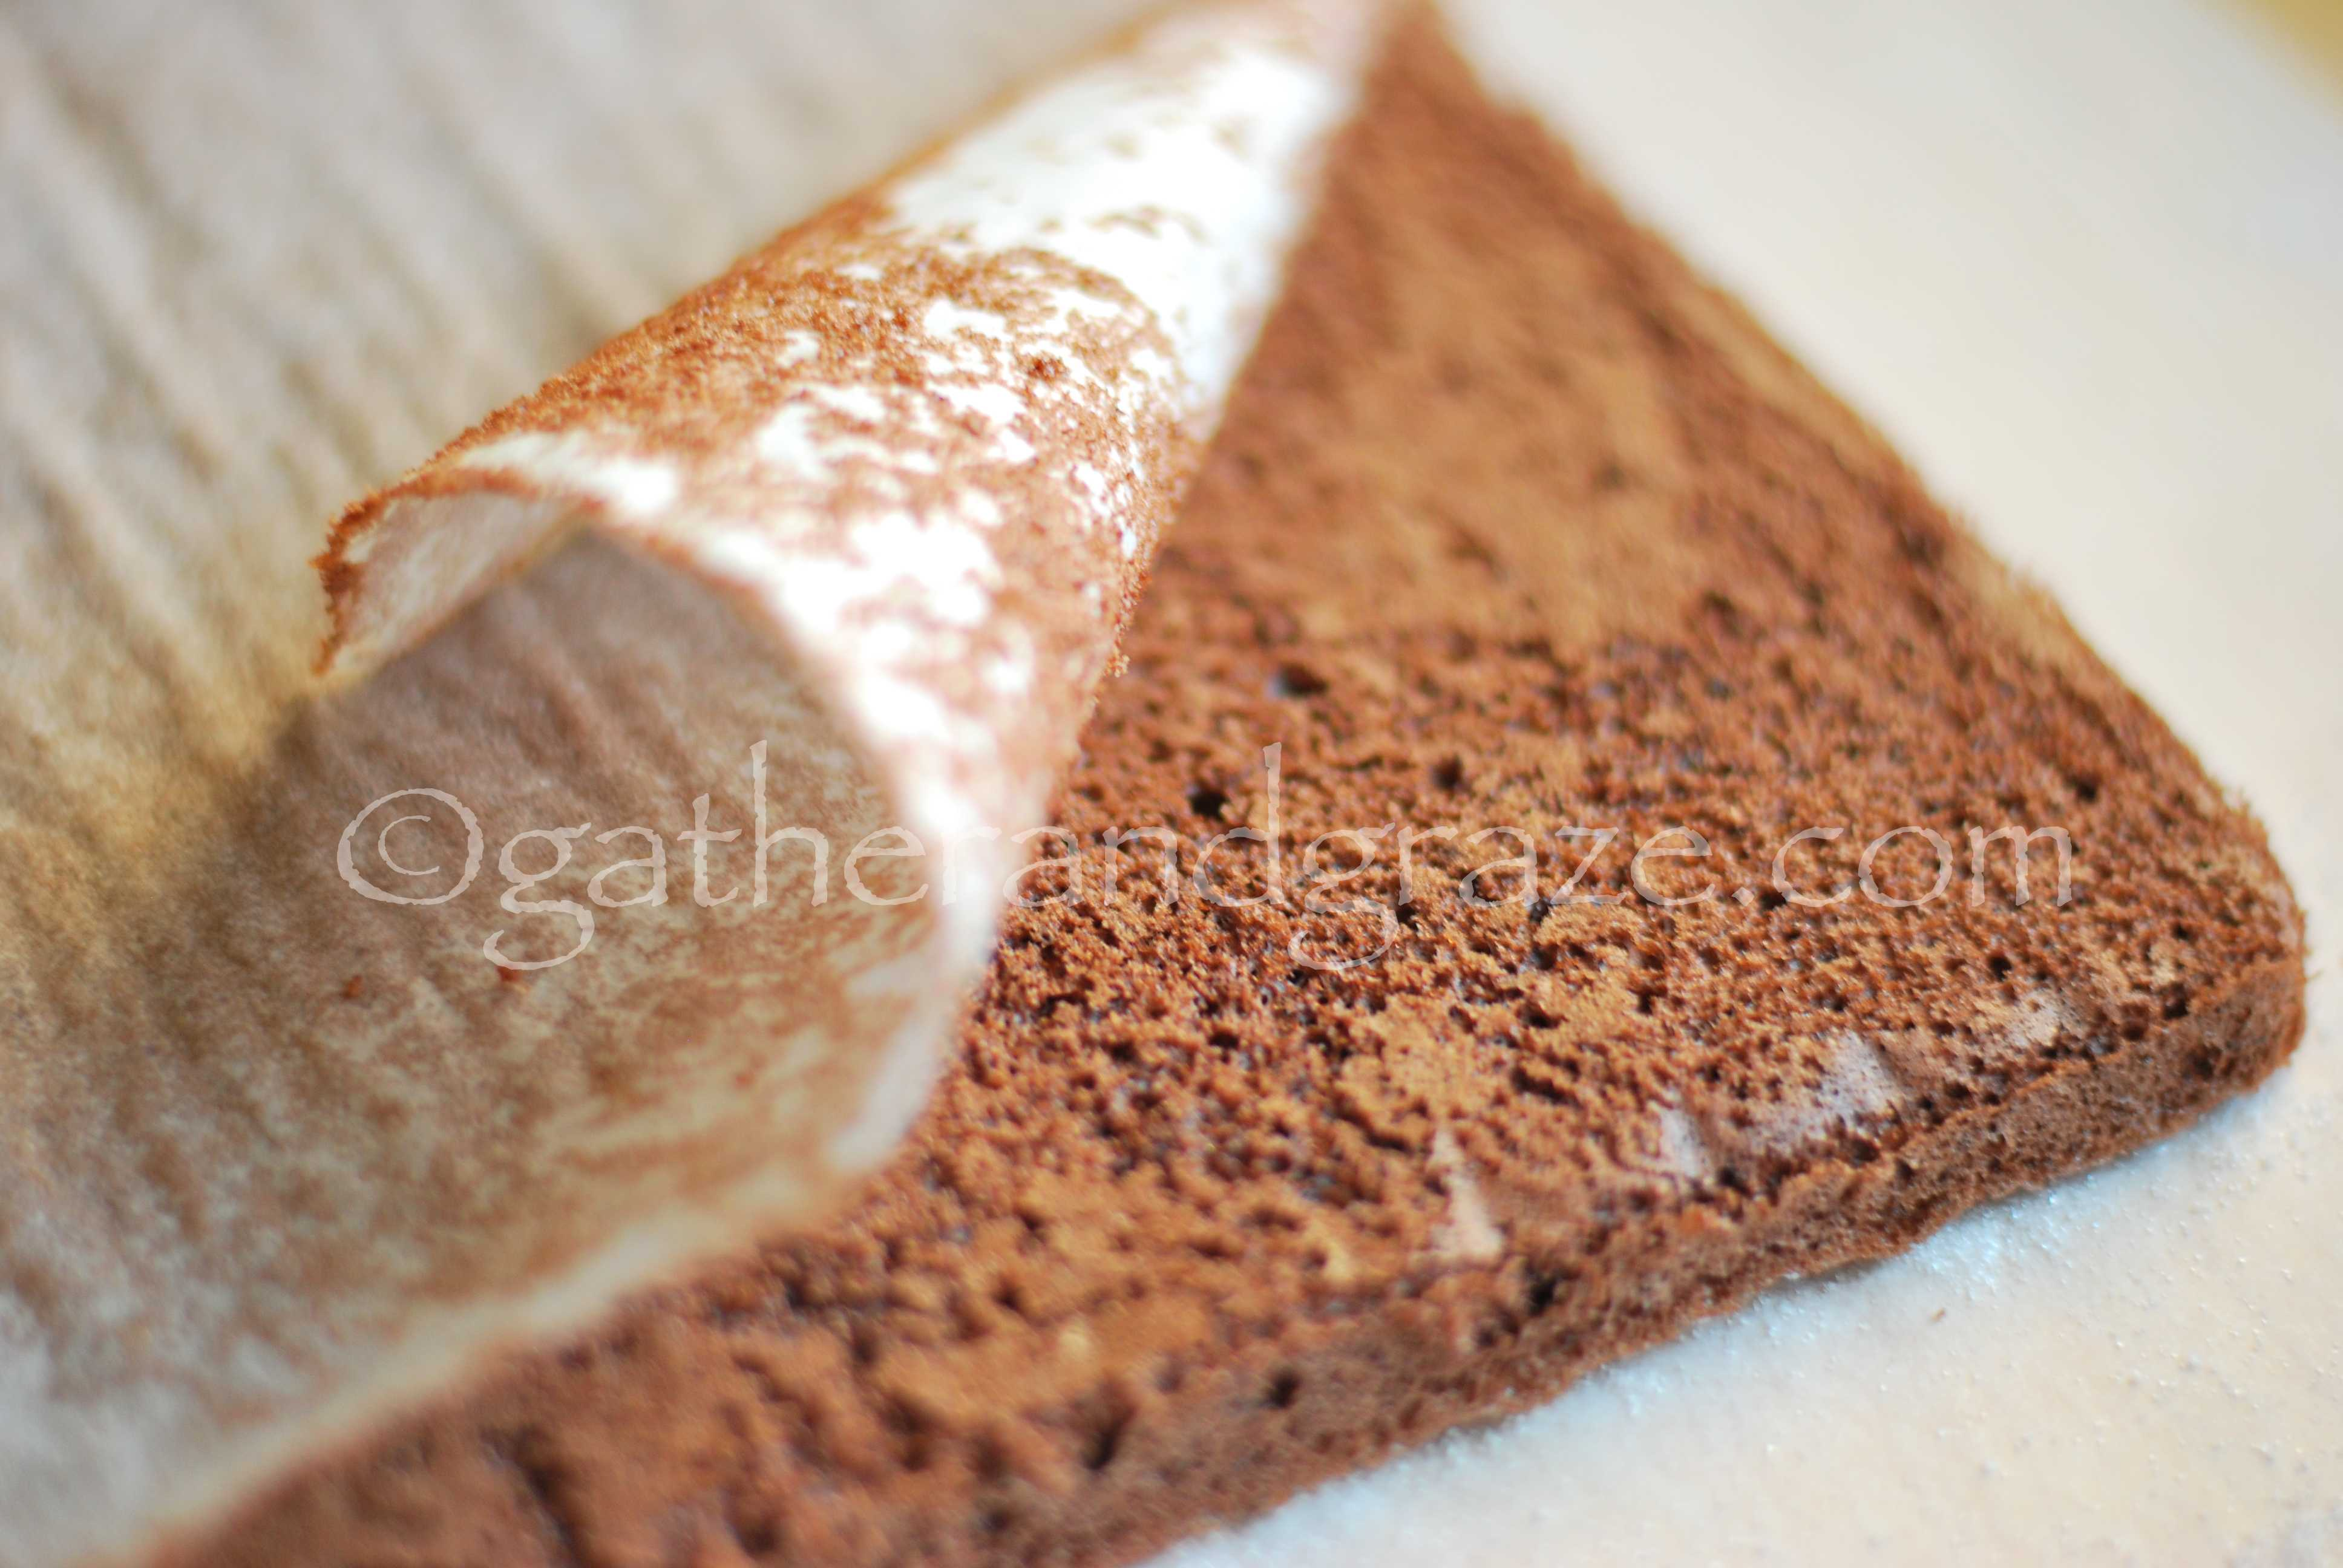 Chocolate Swiss Roll with Nutella Cream | Gather and Graze